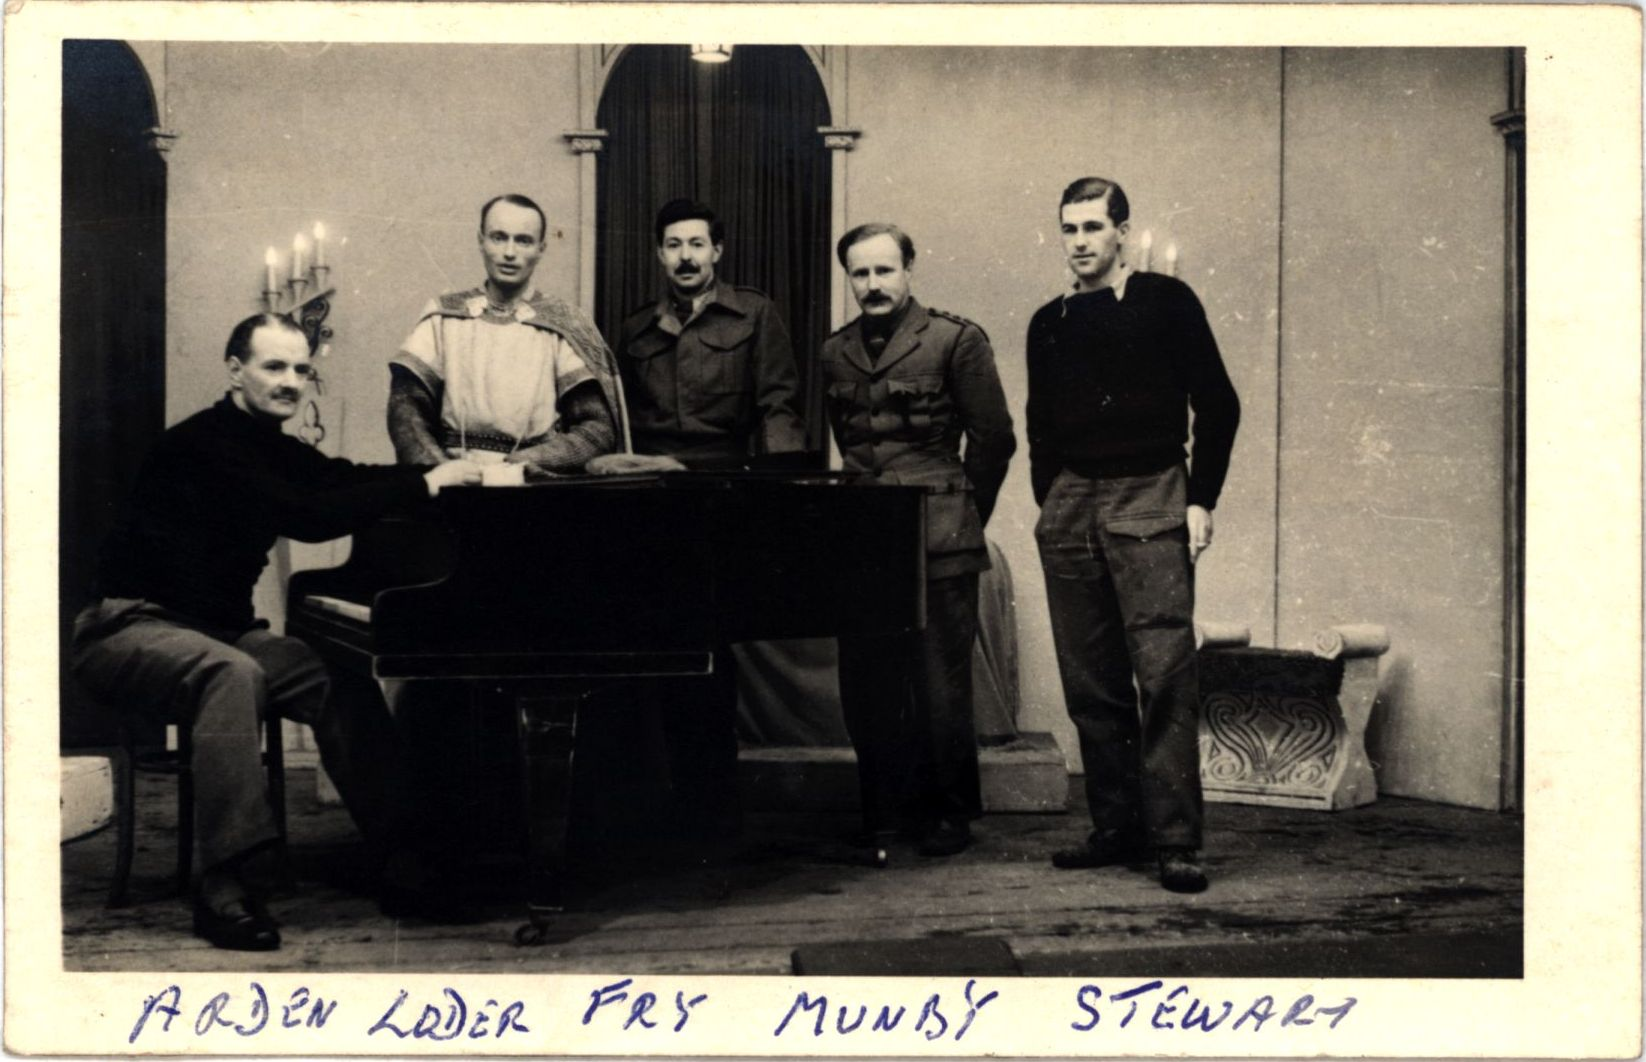 Tim Munby (second from right) and Bobby Loder (second from left) with fellow POWs